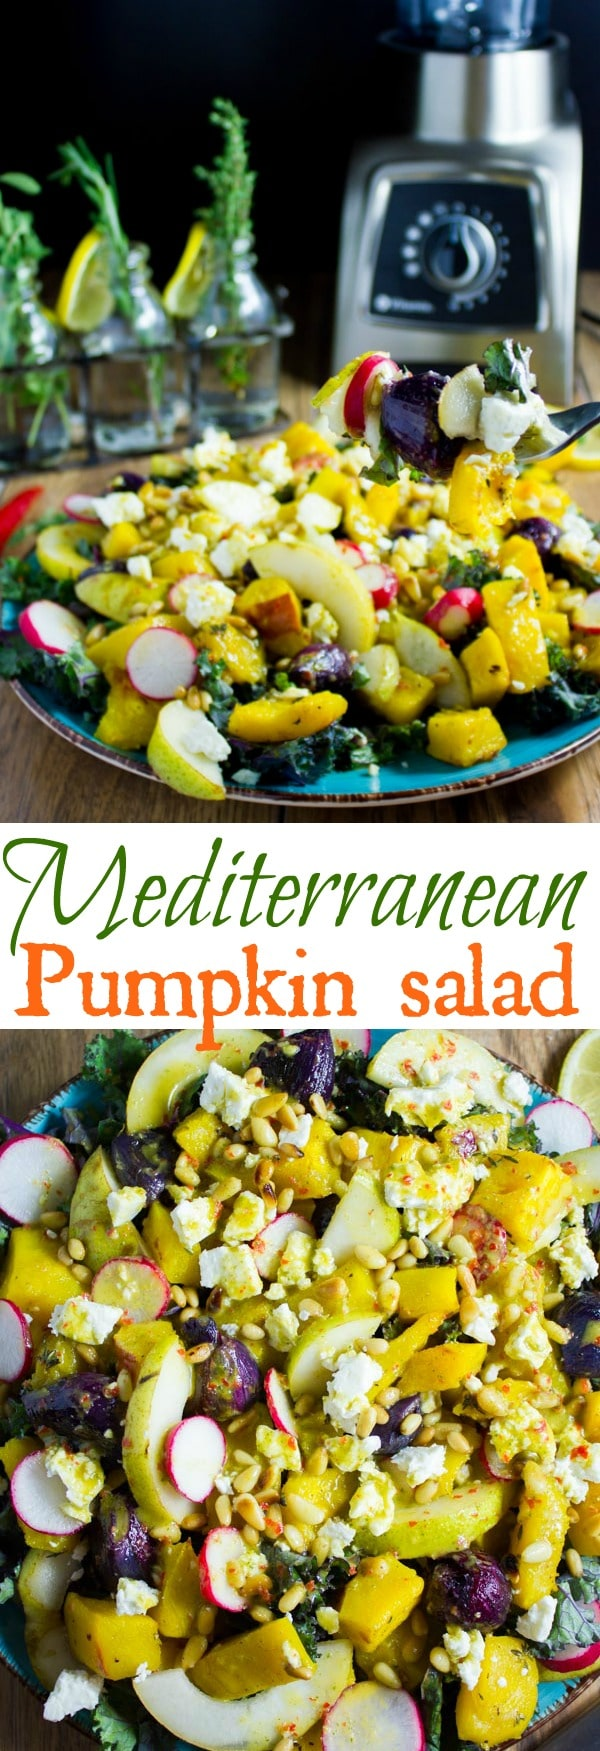 Mediterranean Roasted Pumpkin Salad | Explore the savory side of Pumpkin with this Mediterranean Roasted Pumpkin Salad - zesty, spicy and comforting, with lots of added fruit and nuts, this makes for the perfect side for your Thanksgiving feast or any other festive dinner. It can also easily be made vegan! #saladrecipes, #easyrecipes, #healthydinner, #mealprep, #pumpkin, #fallrecipes